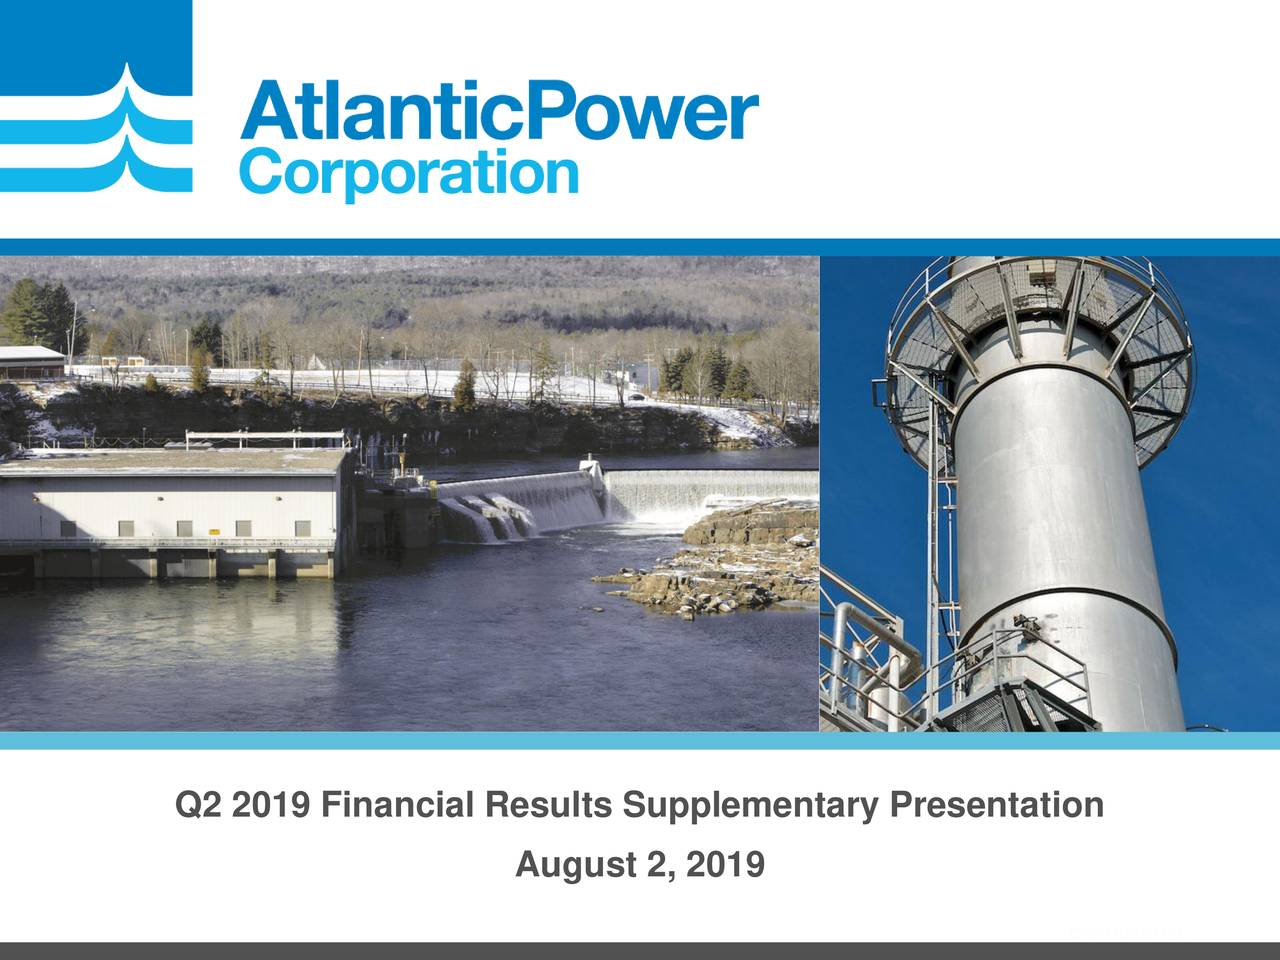 Q2 2019 Financial Results Supplementary Presentation